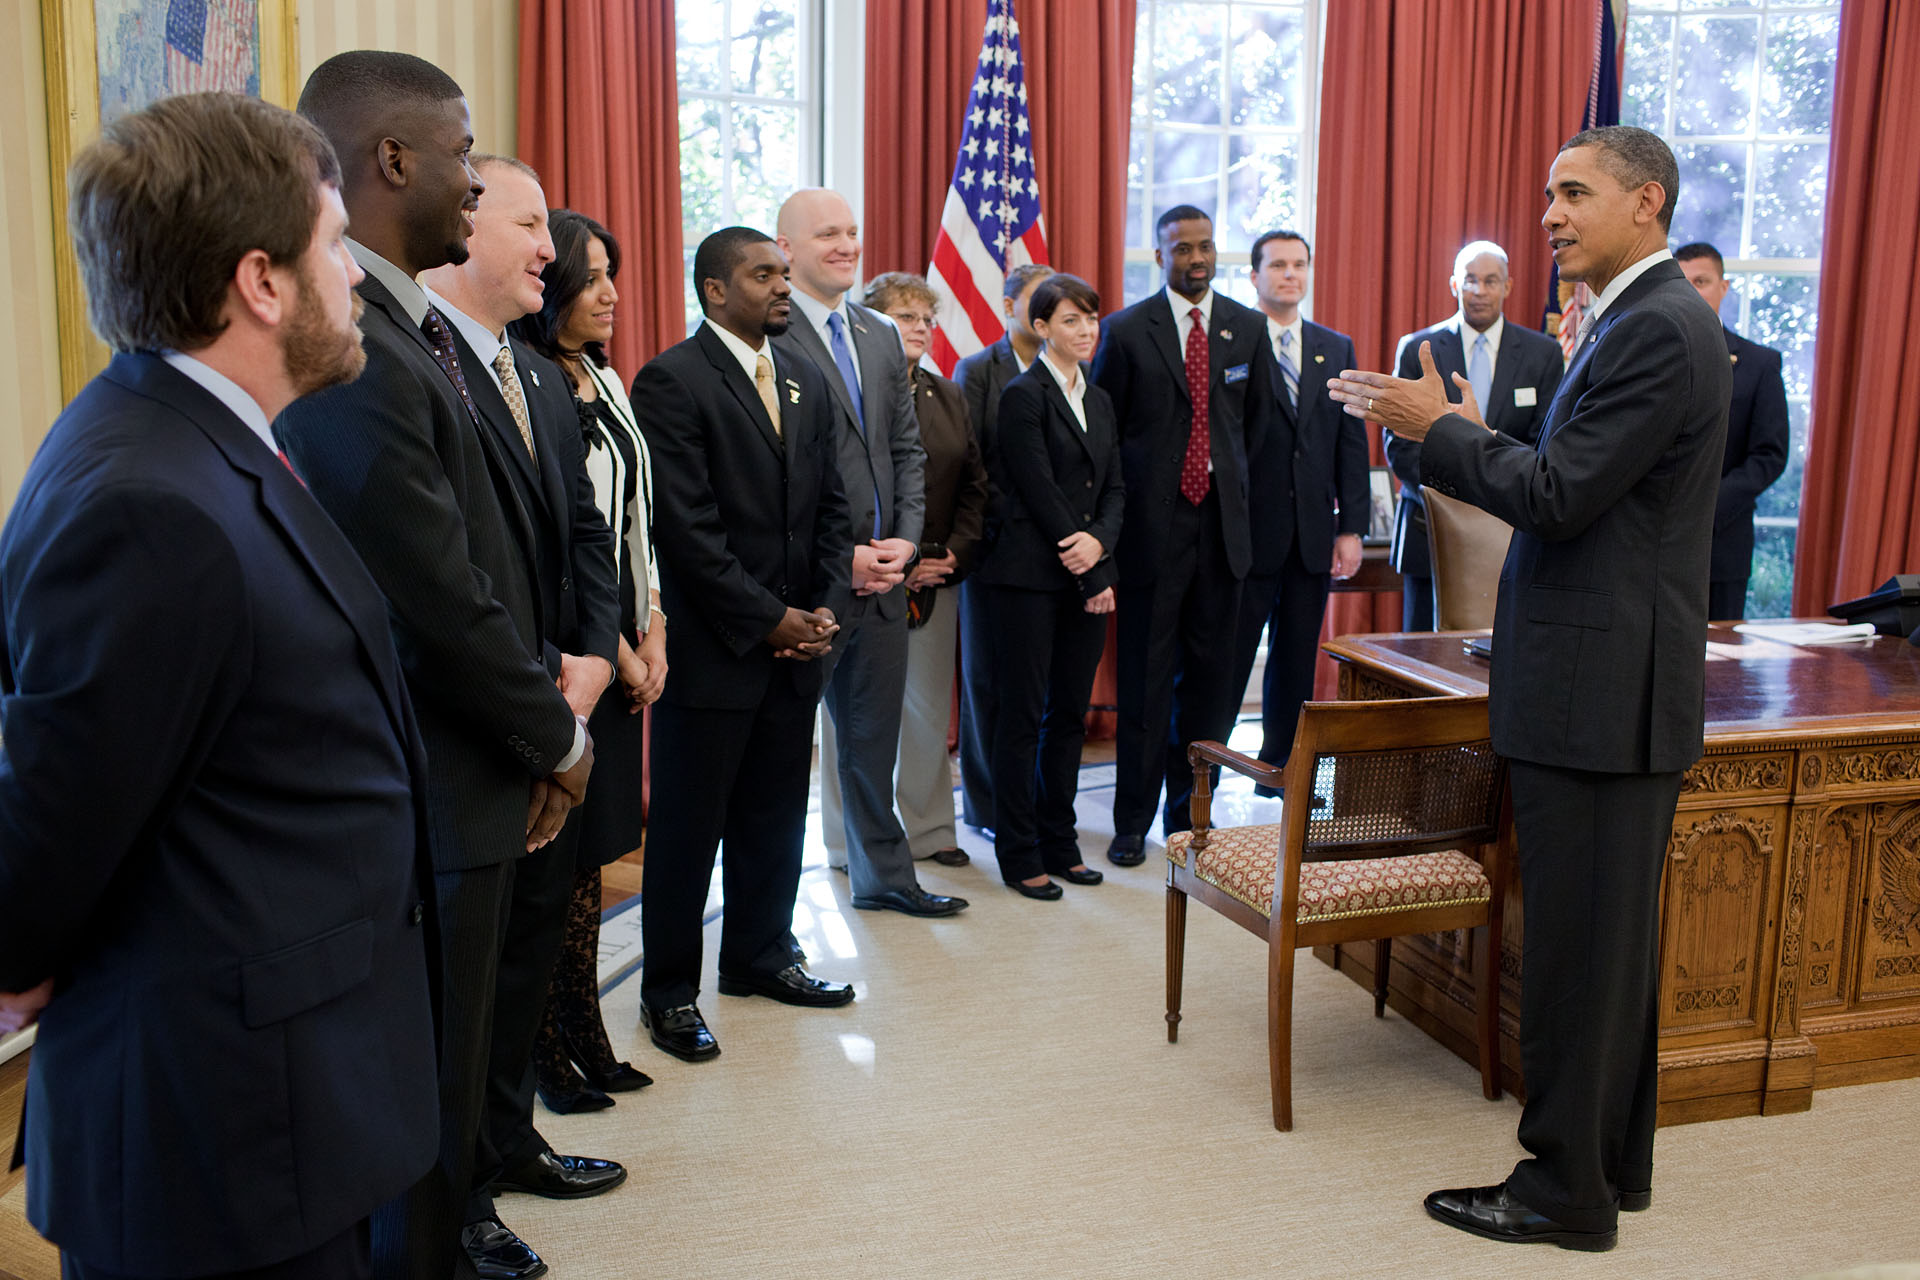 President Obama Greets Representatives From Veterans' Service Organizations